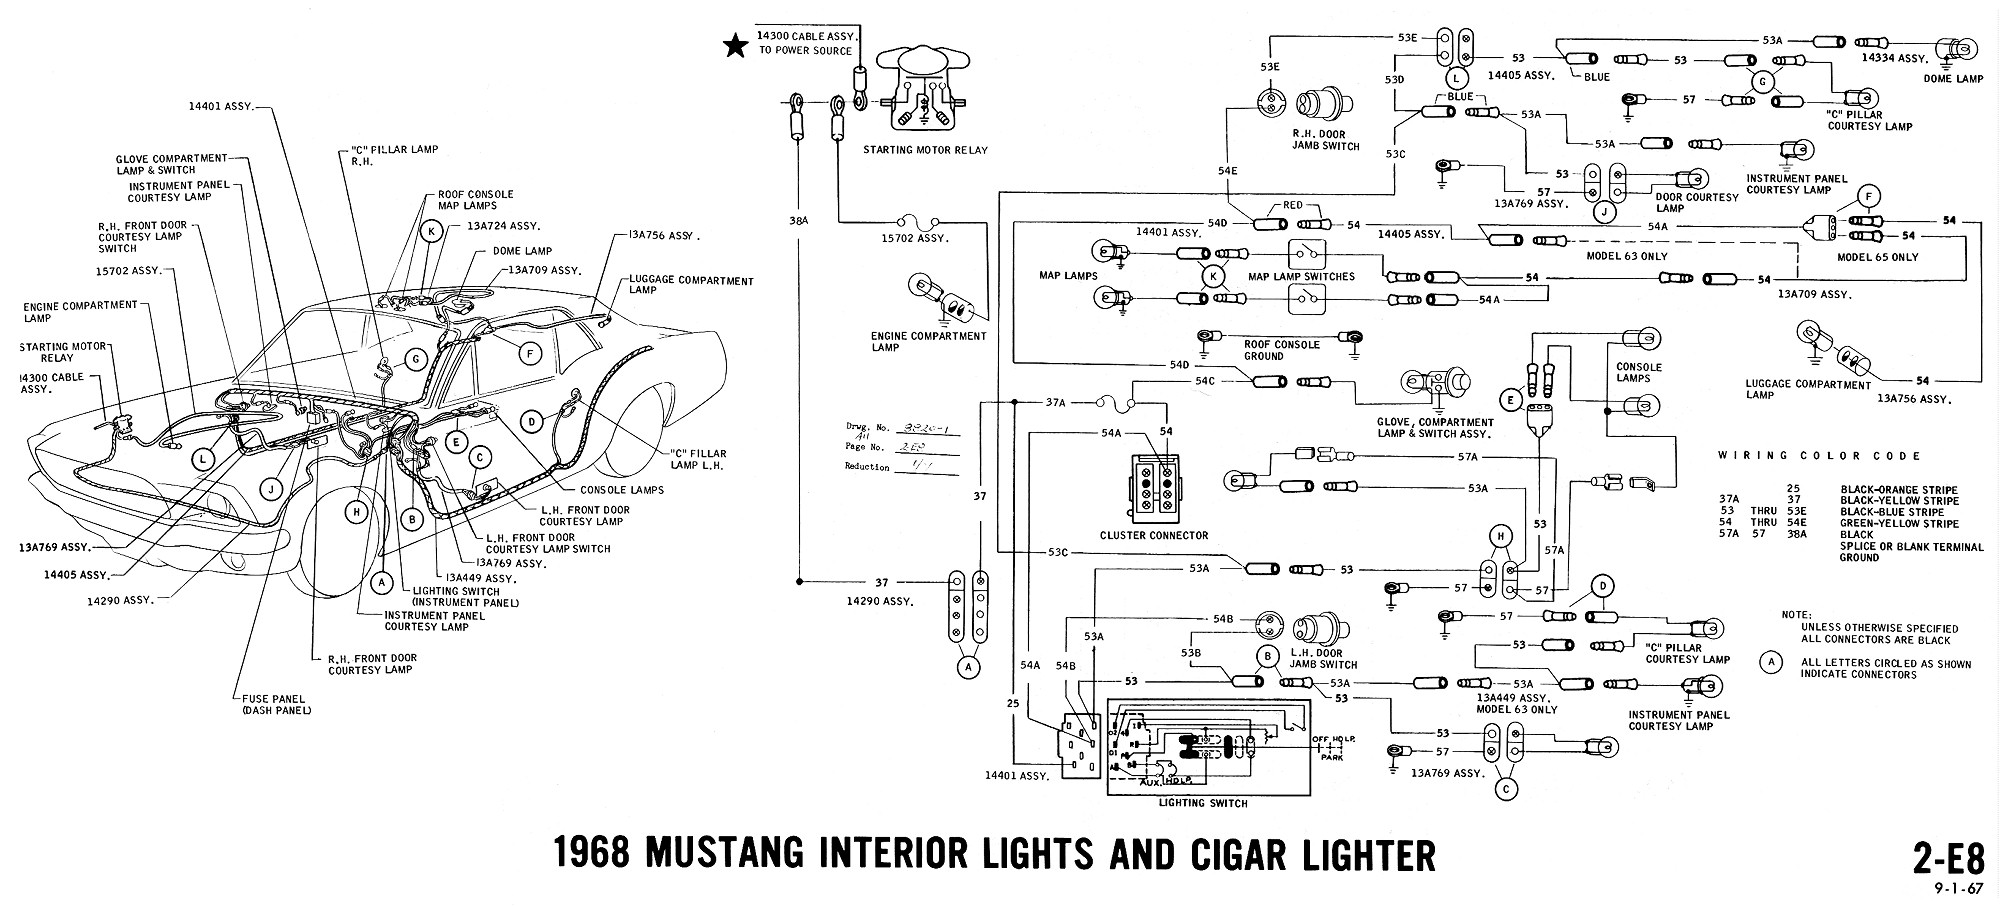 1968 mustang wiring diagram interior lights cigar lighter?resize=665%2C301 wiring diagrams carrier the wiring diagram readingrat net carrier 48es wiring diagram at honlapkeszites.co